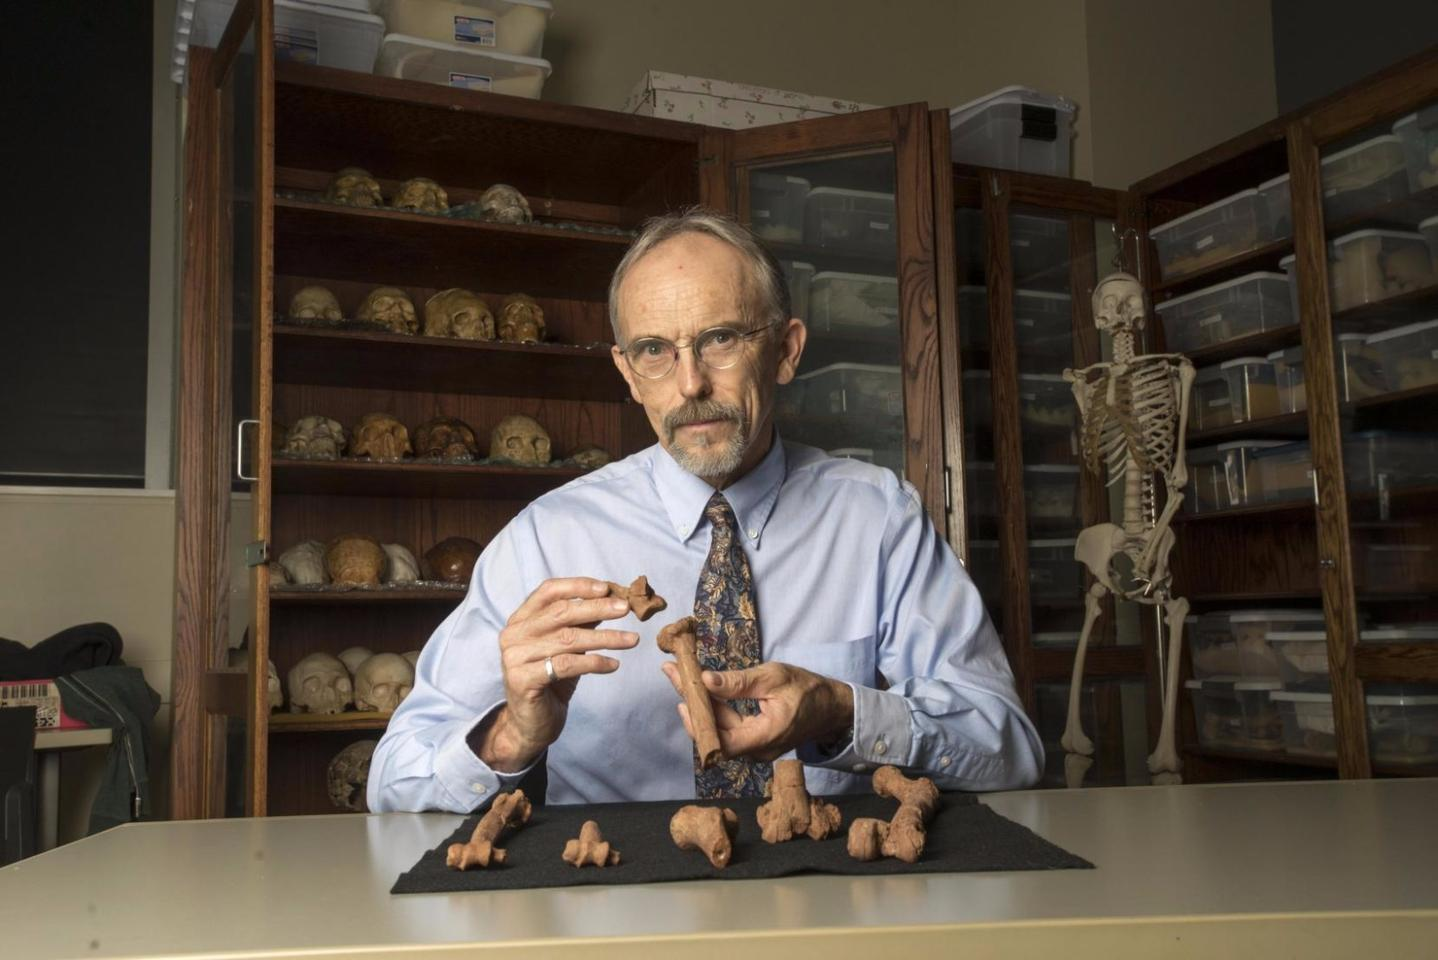 Kappelman believes 3D printouts of Lucy's skeleton will help other researchers test his theory that the breaks are consistent with a fall